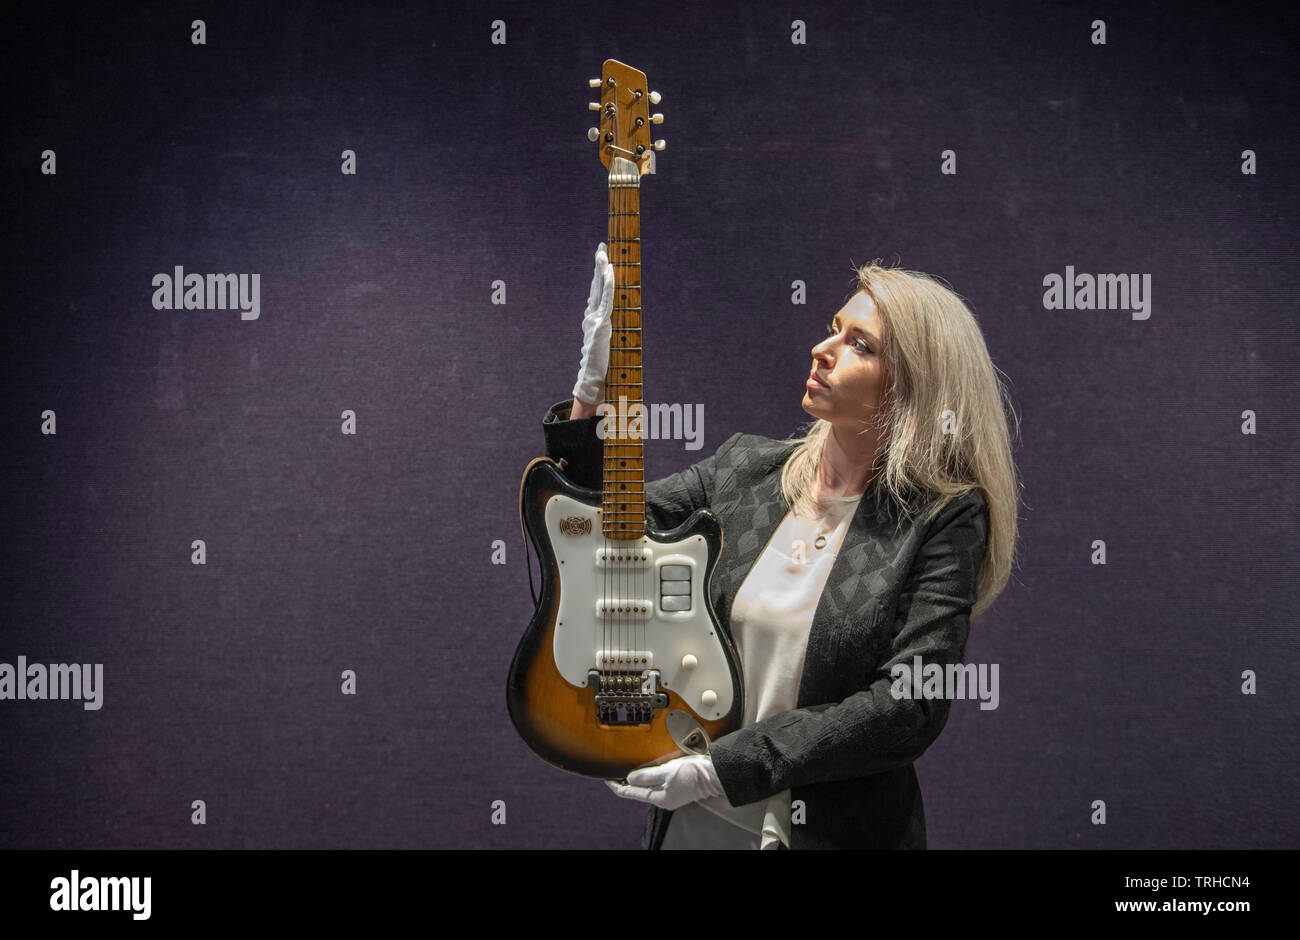 Bonhams, London, UK. 6th June 2019. George Harrison's Futurama electric guitar, c 1958, on display at Bonhams Entertainment Memorabilia sale preview Knightsbridge for sale on 12th June. Estimate £200,000-300,000. This historically important guitar, which comes in its original case embellished with Hamburg stickers, has never been seen on the market before; it has impeccable provenance and is extremely well-documented. Credit: Malcolm Park/Alamy Live News. - Stock Image